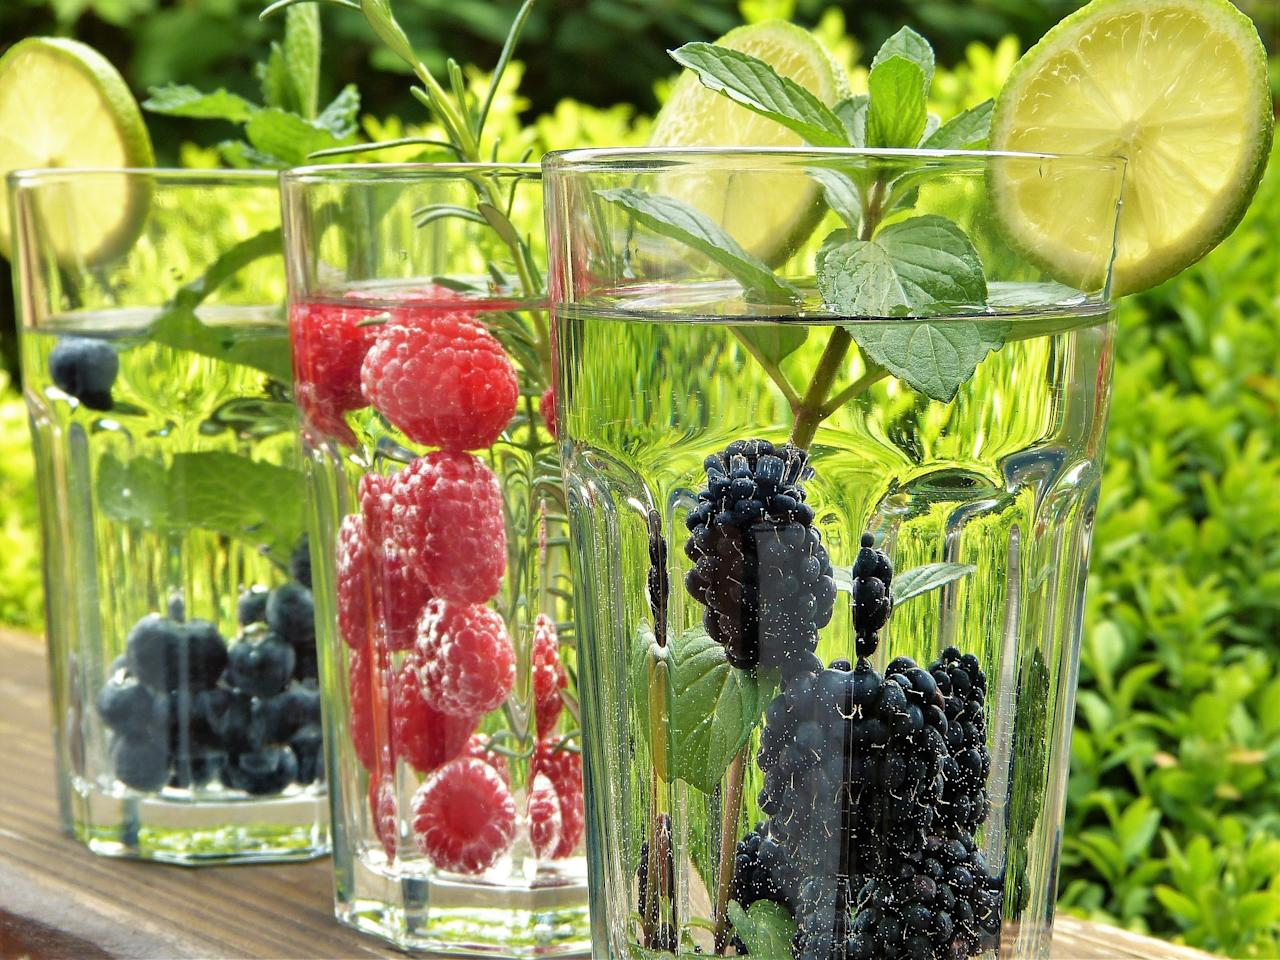 <p>There are plenty of ways to go beyond plain, boring H2O. Fruits in your water adds a little flavor (without adding in the sugar) that you'd find in fruit juices. Freeze some lemon slices in ice cubes for an easy water upgrade or try a little ginger and herbs to switch things up a bit. </p>